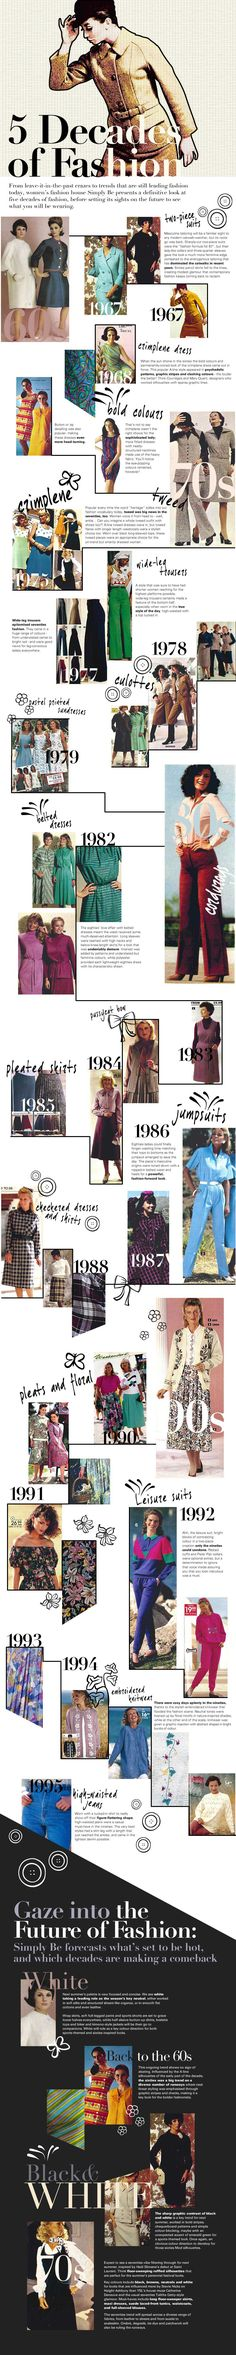 #INFOgraphic > 50 Years of Fashion: Fashion addicts, take a journey to trends that are still leading fashion today. Simply Be presents a retrospective collection of the styles, forms, textures, patterns and colors that marked fashion industry and dominated catwalks from early 60s to late 90s.  > http://infographicsmania.com/50-years-of-fashion/